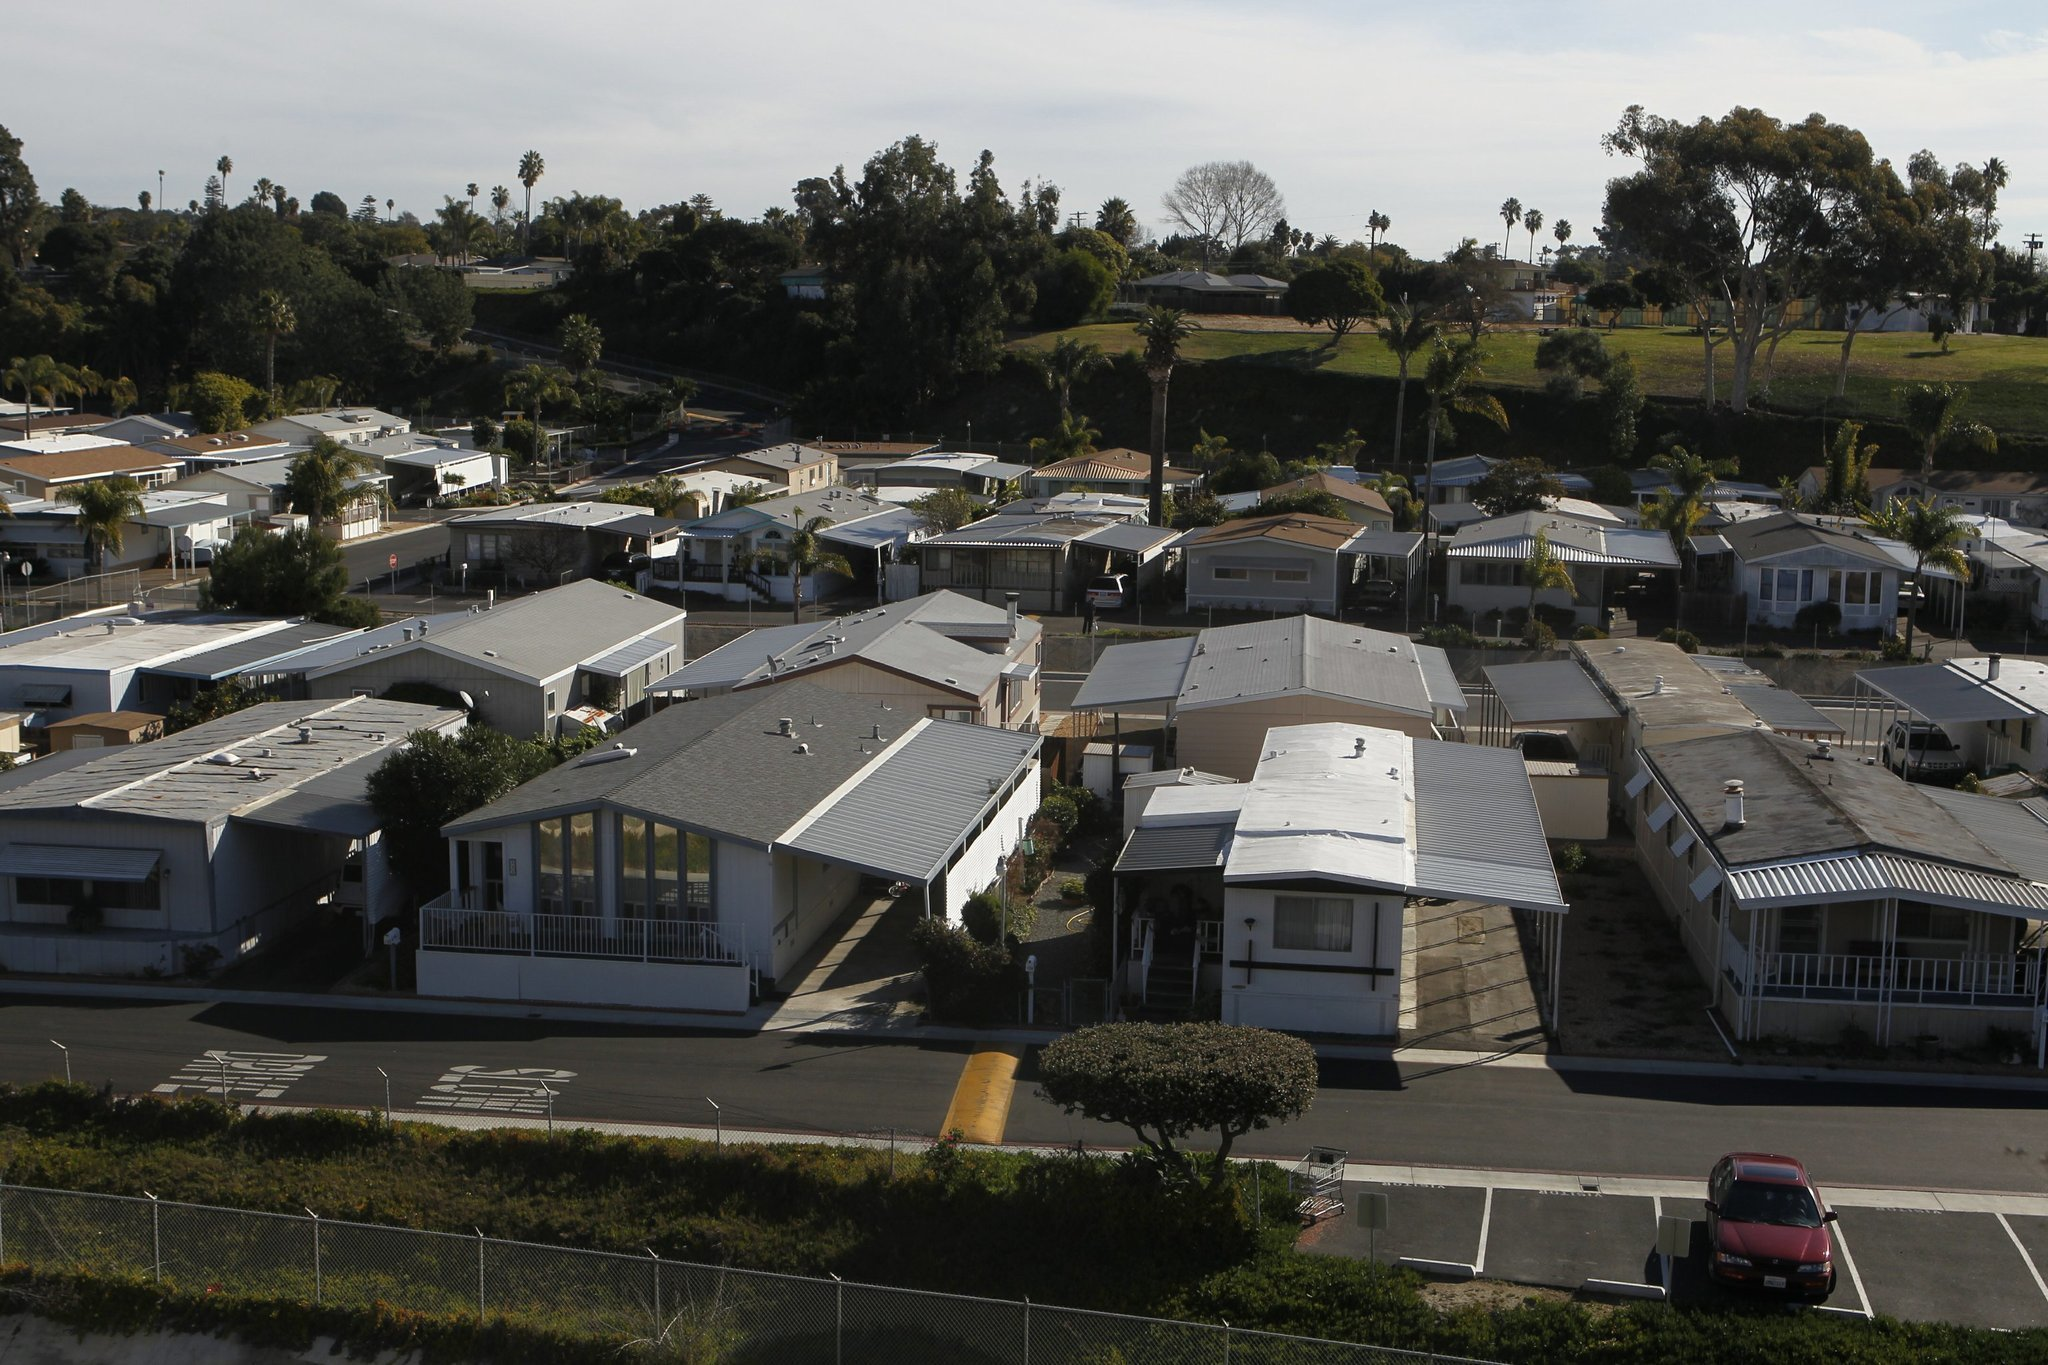 mobile home park effort to stop renting spaces could set a